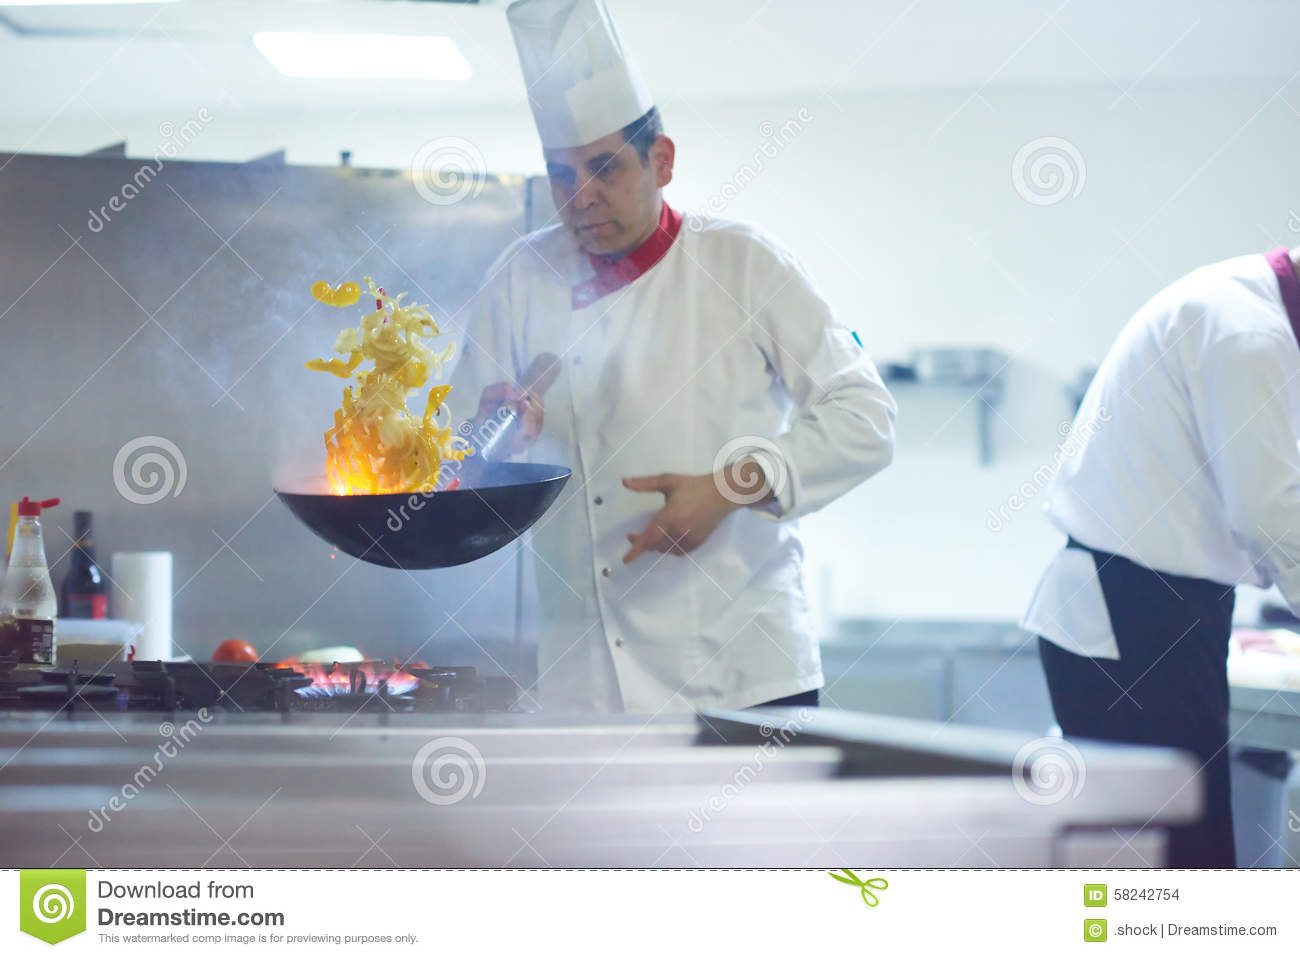 Chef In Hotel Kitchen Prepare Food With Fire Stock Photo - Image of ...